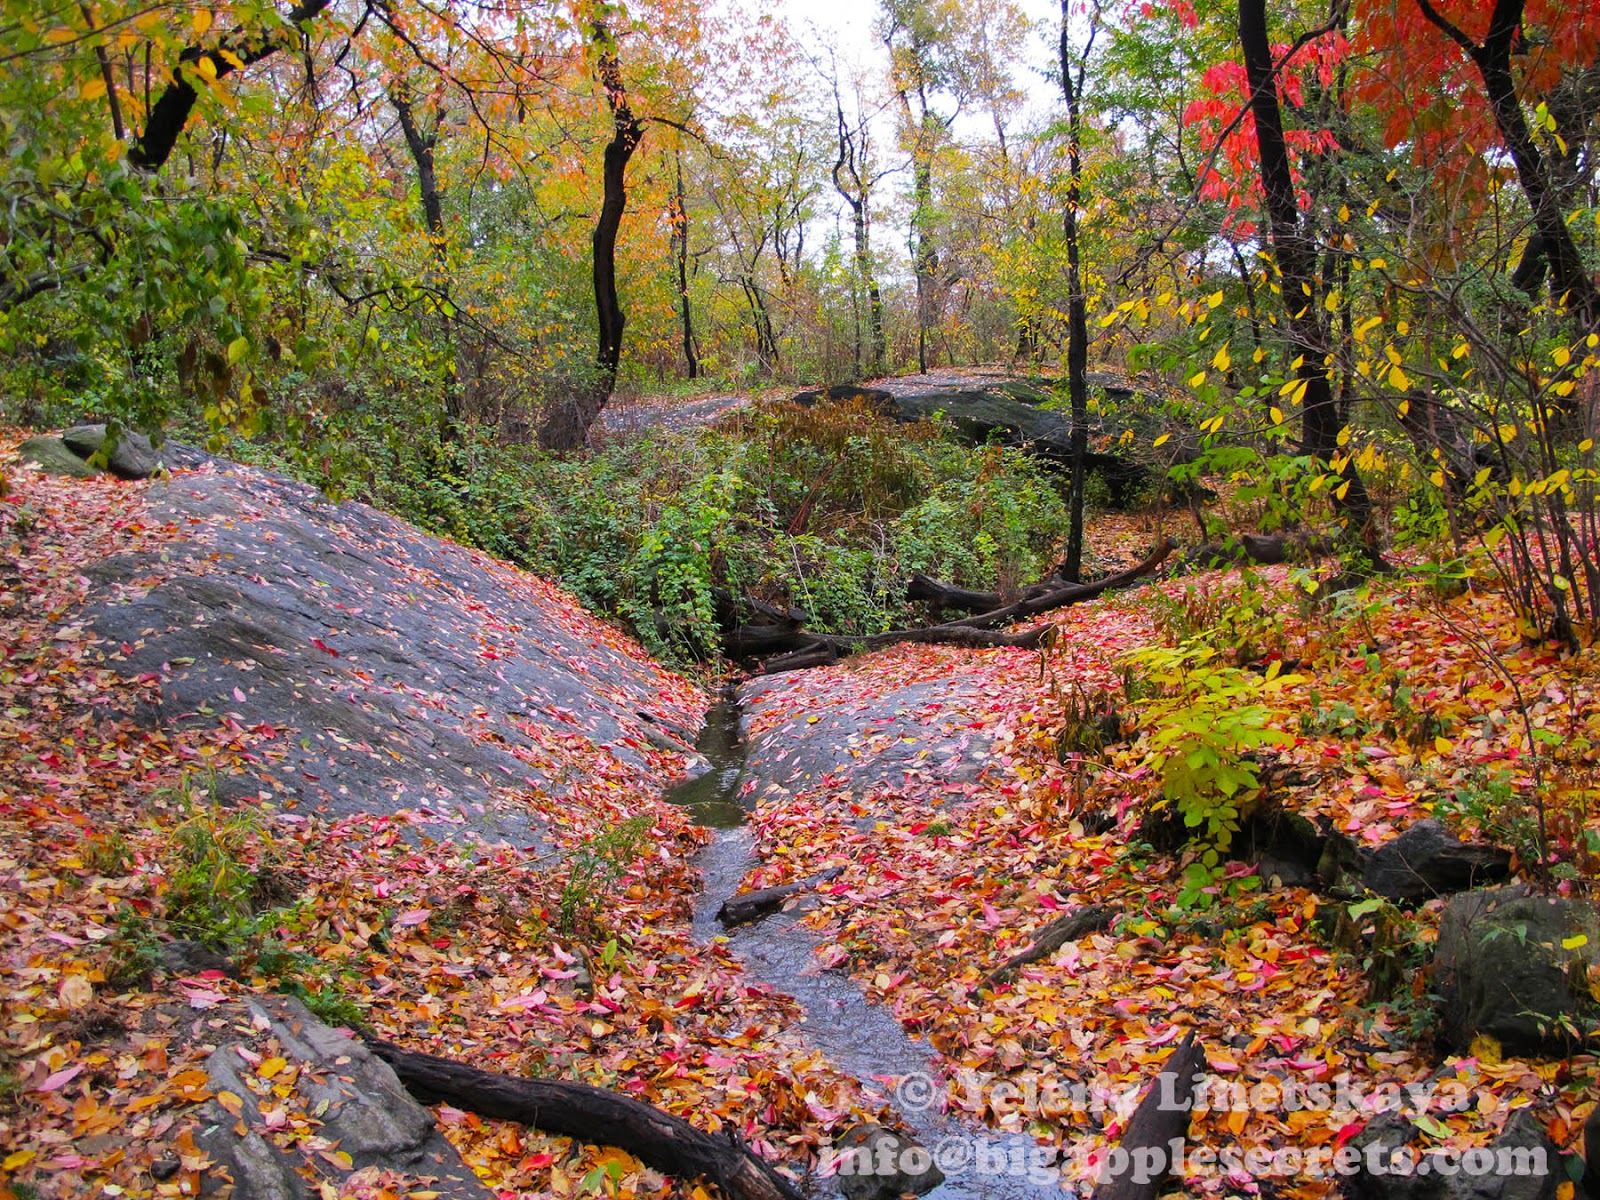 Ramble in Central Park: A Wilderness West of Fifth